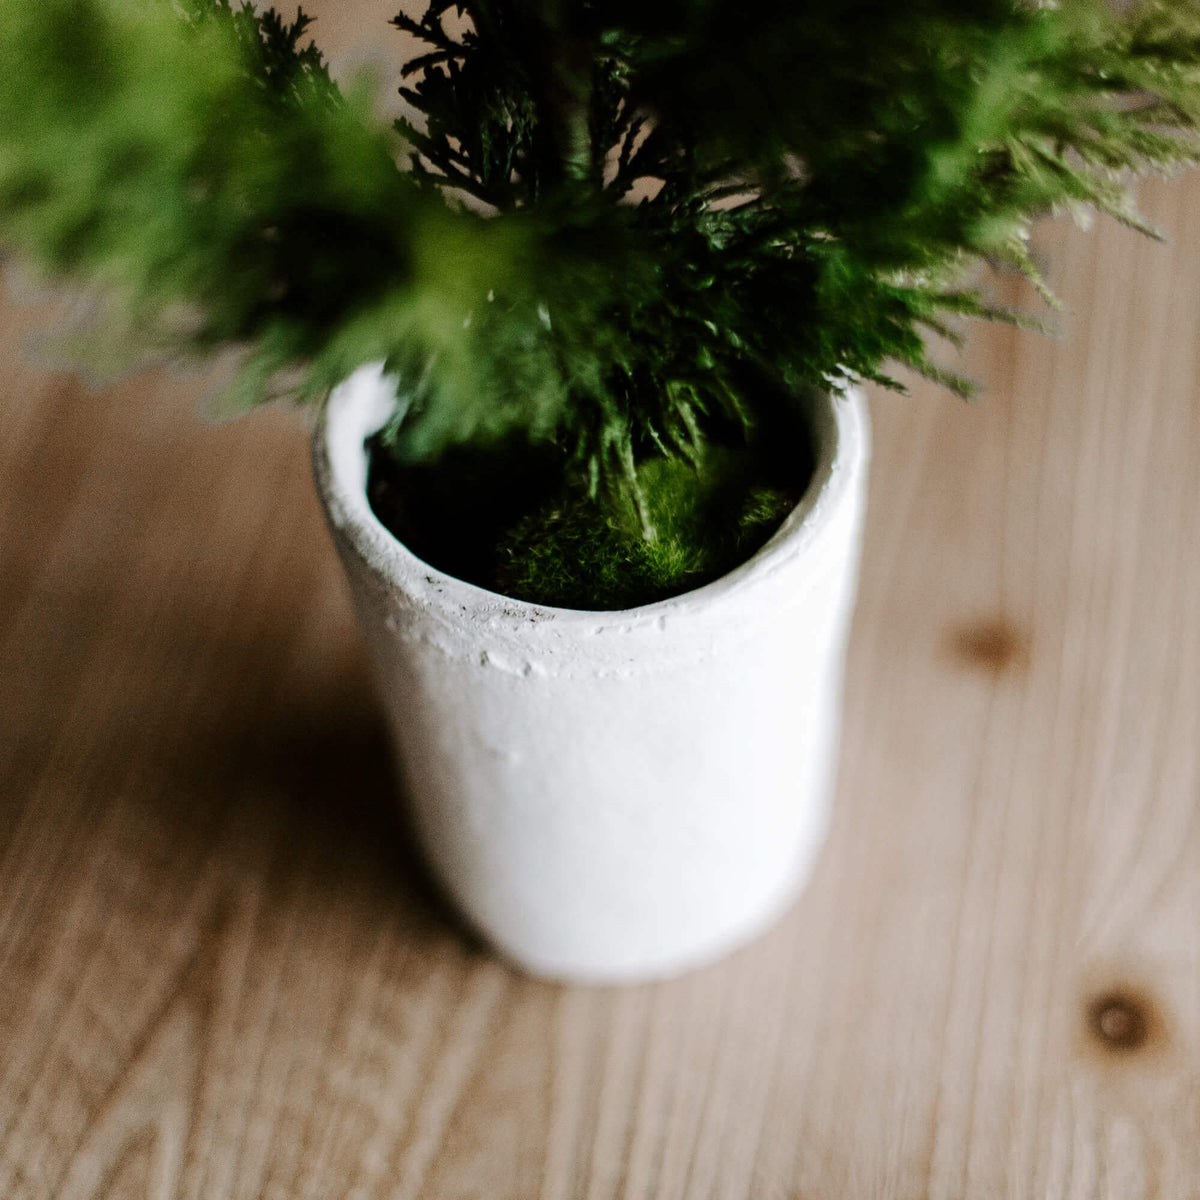 The details of a rustic white pot that holds a realistic faux 20 inch tall pine tree for tabletop or mantle decorating during the holidays